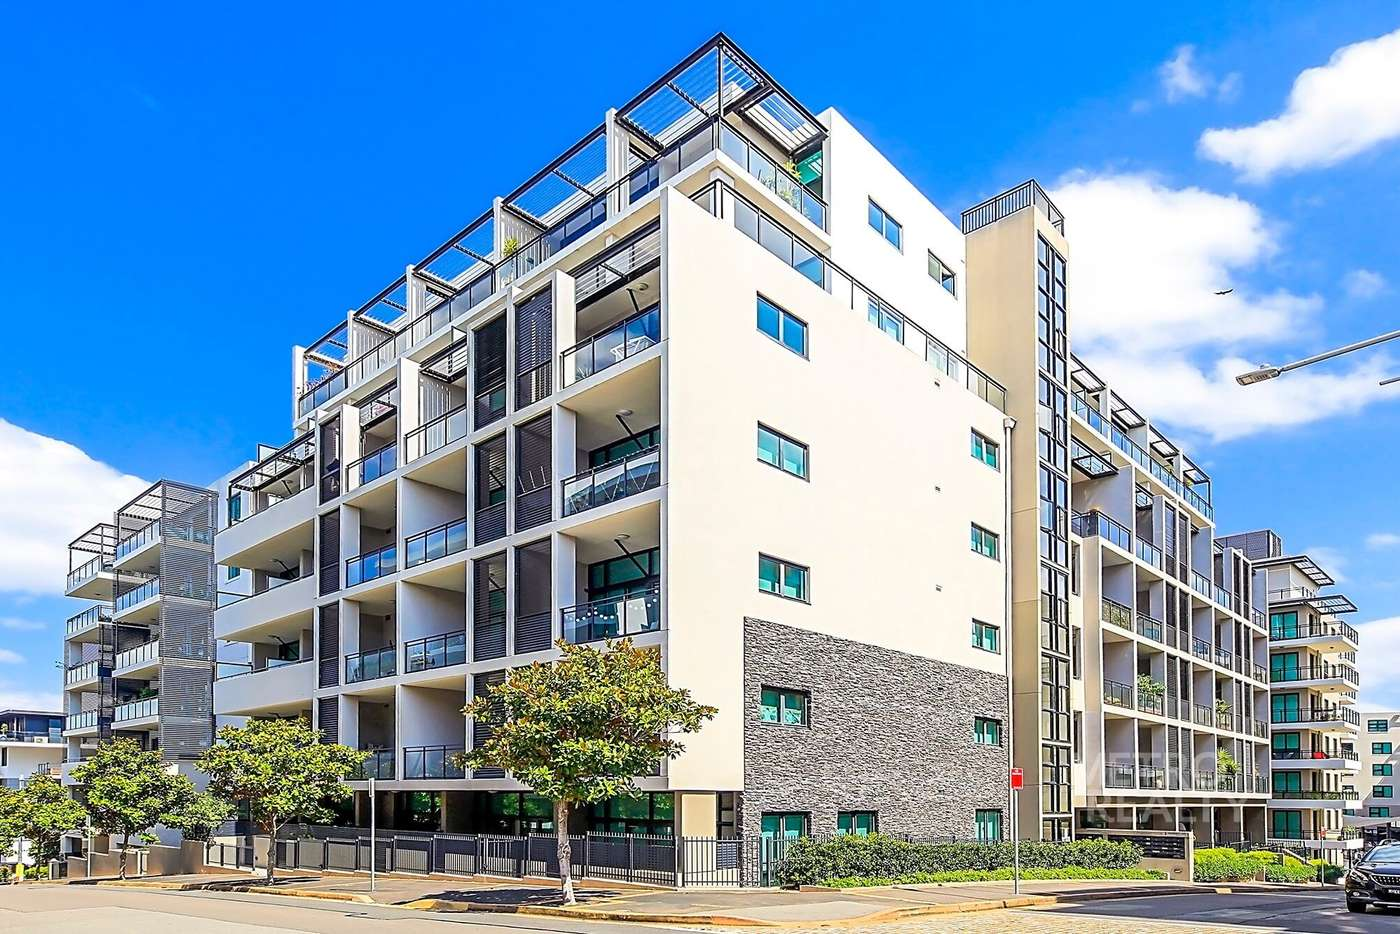 Main view of Homely apartment listing, 14/15 Angas Street, Meadowbank NSW 2114